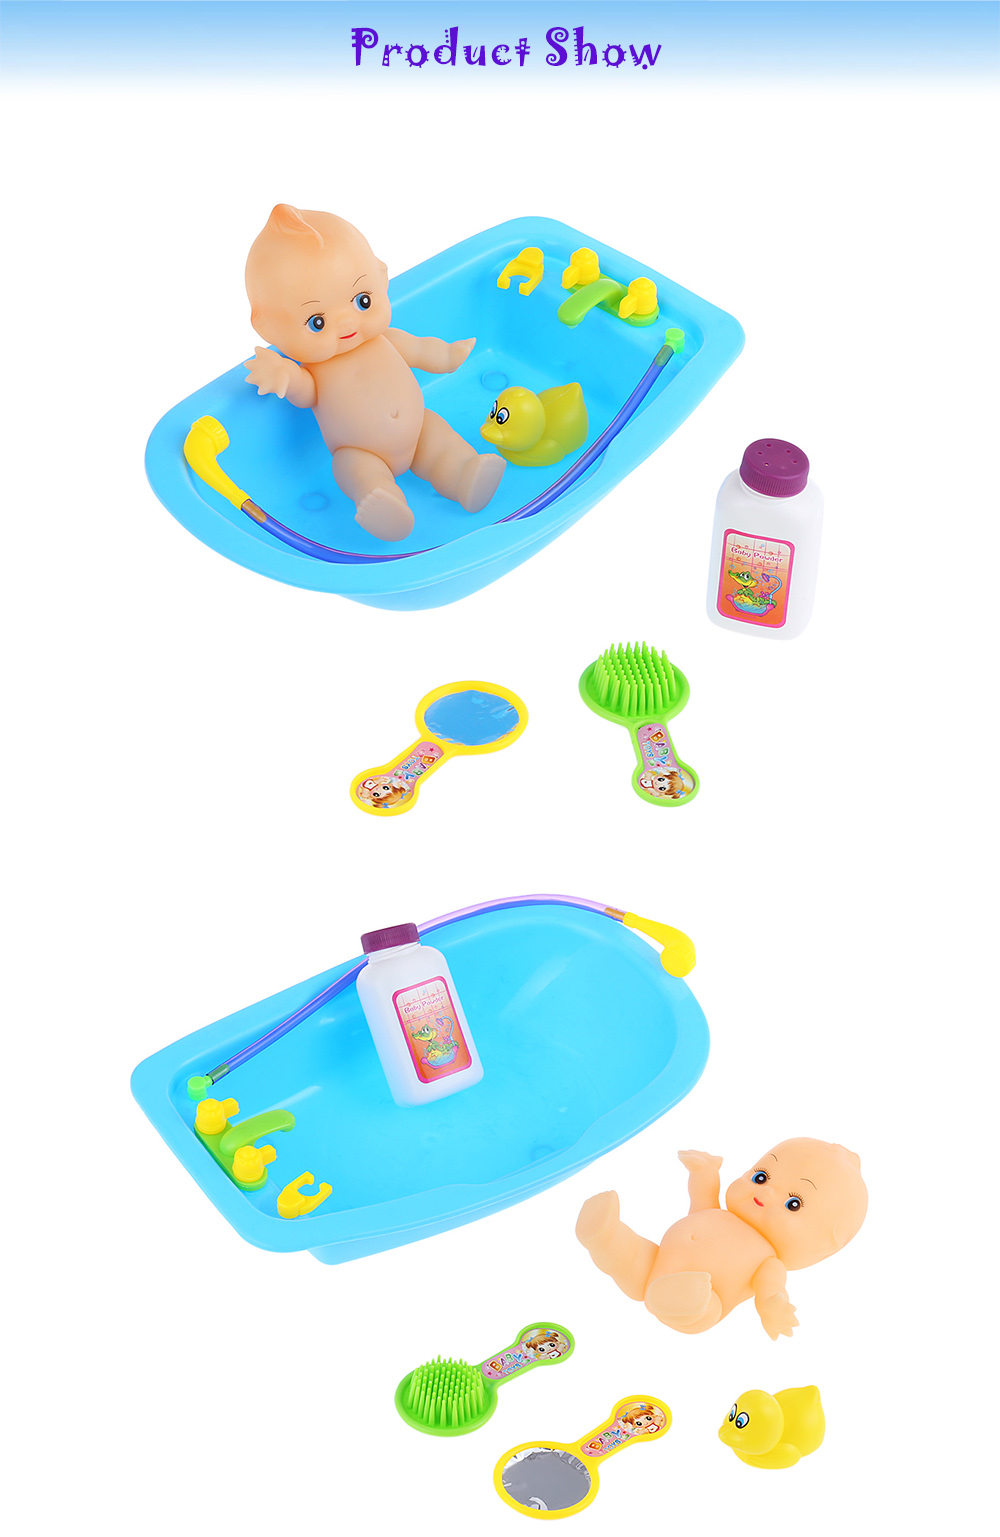 Simulated Infant Bathing Bathtub Toy - $5.66 Free Shipping|GearBest.com